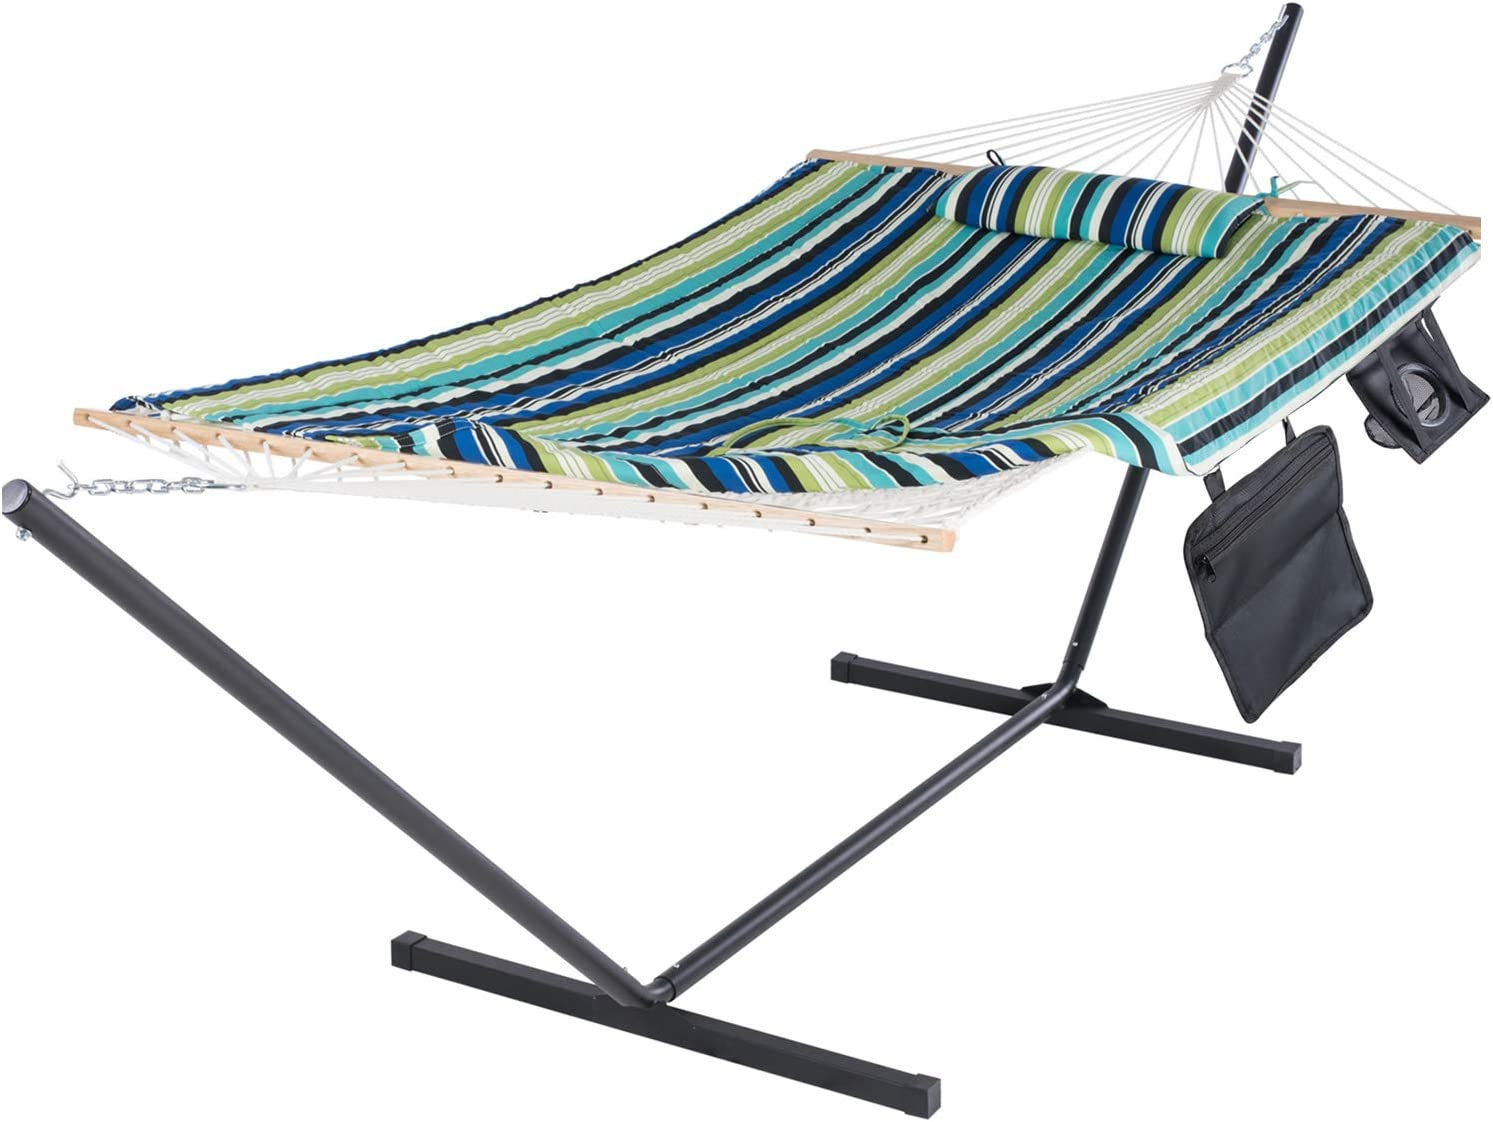 Amazon Com Suncreat Cotton Rope Hammock With Stand Extra Large Double Hammock With Hardwood Spreader Bars Quilted Fabric Pad Detachable Pillow Ipad Bag Cup Holder Blue Kitchen Dining